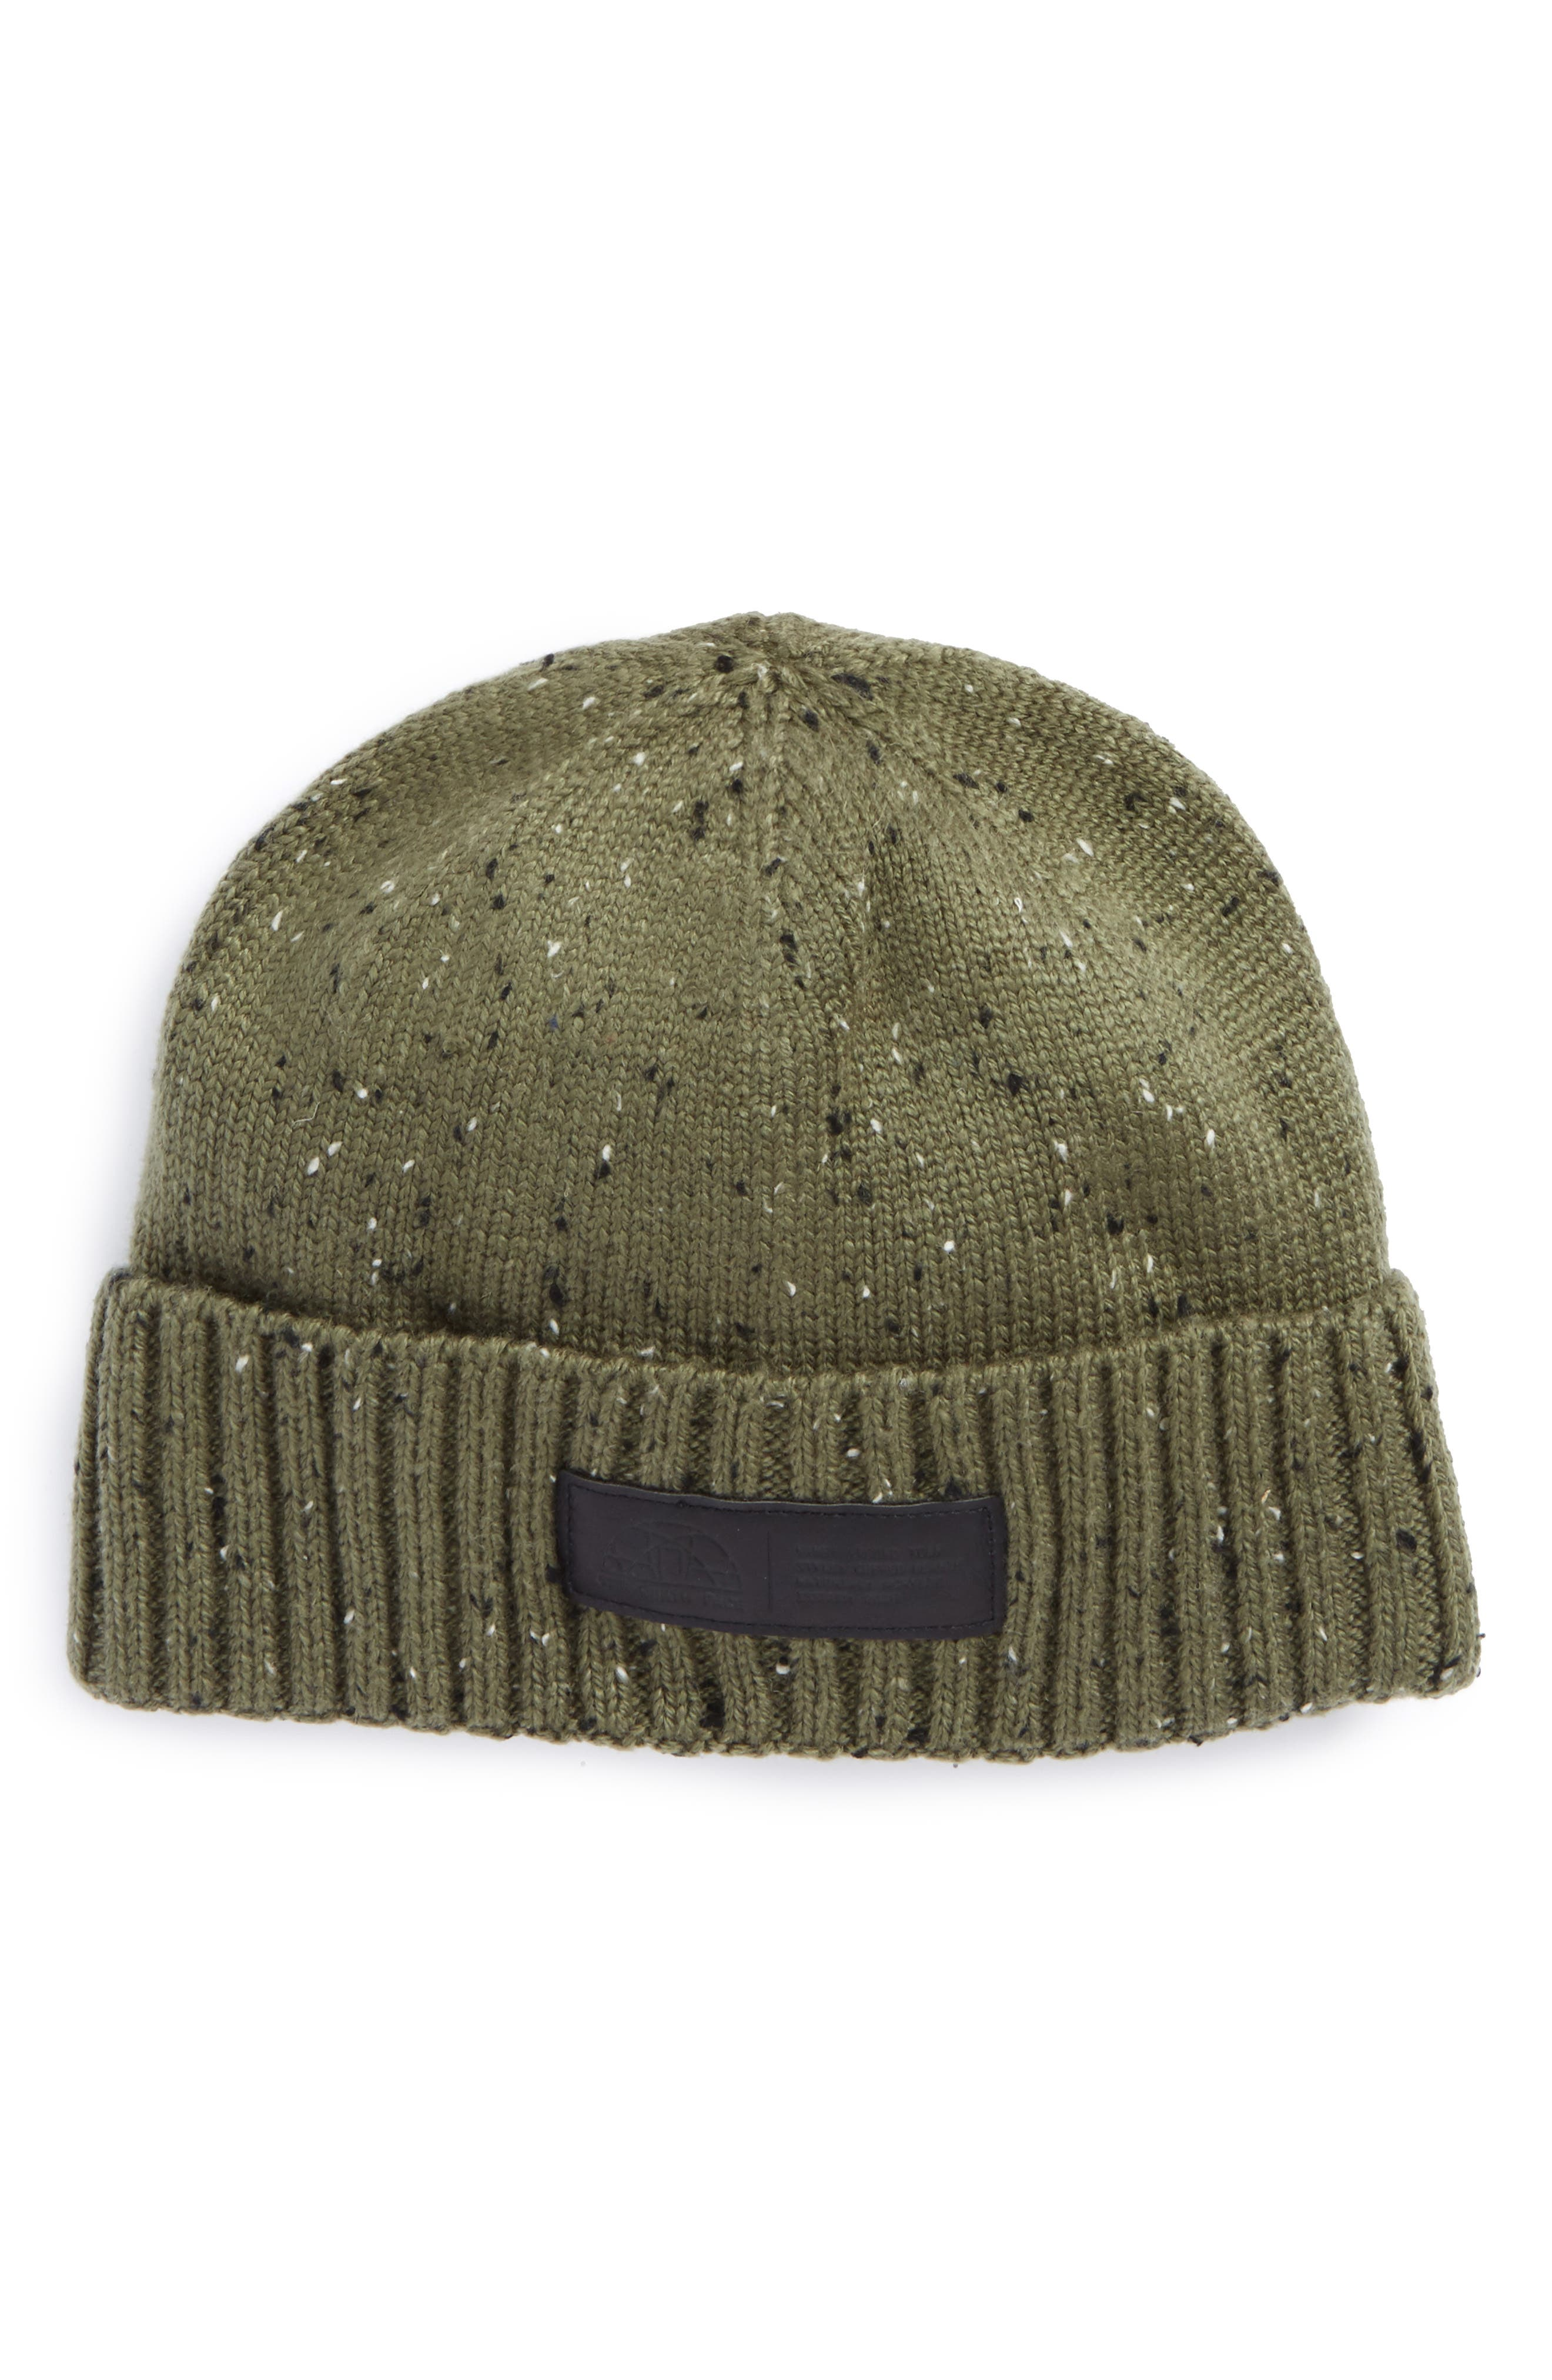 Around Town Beanie,                         Main,                         color, 301